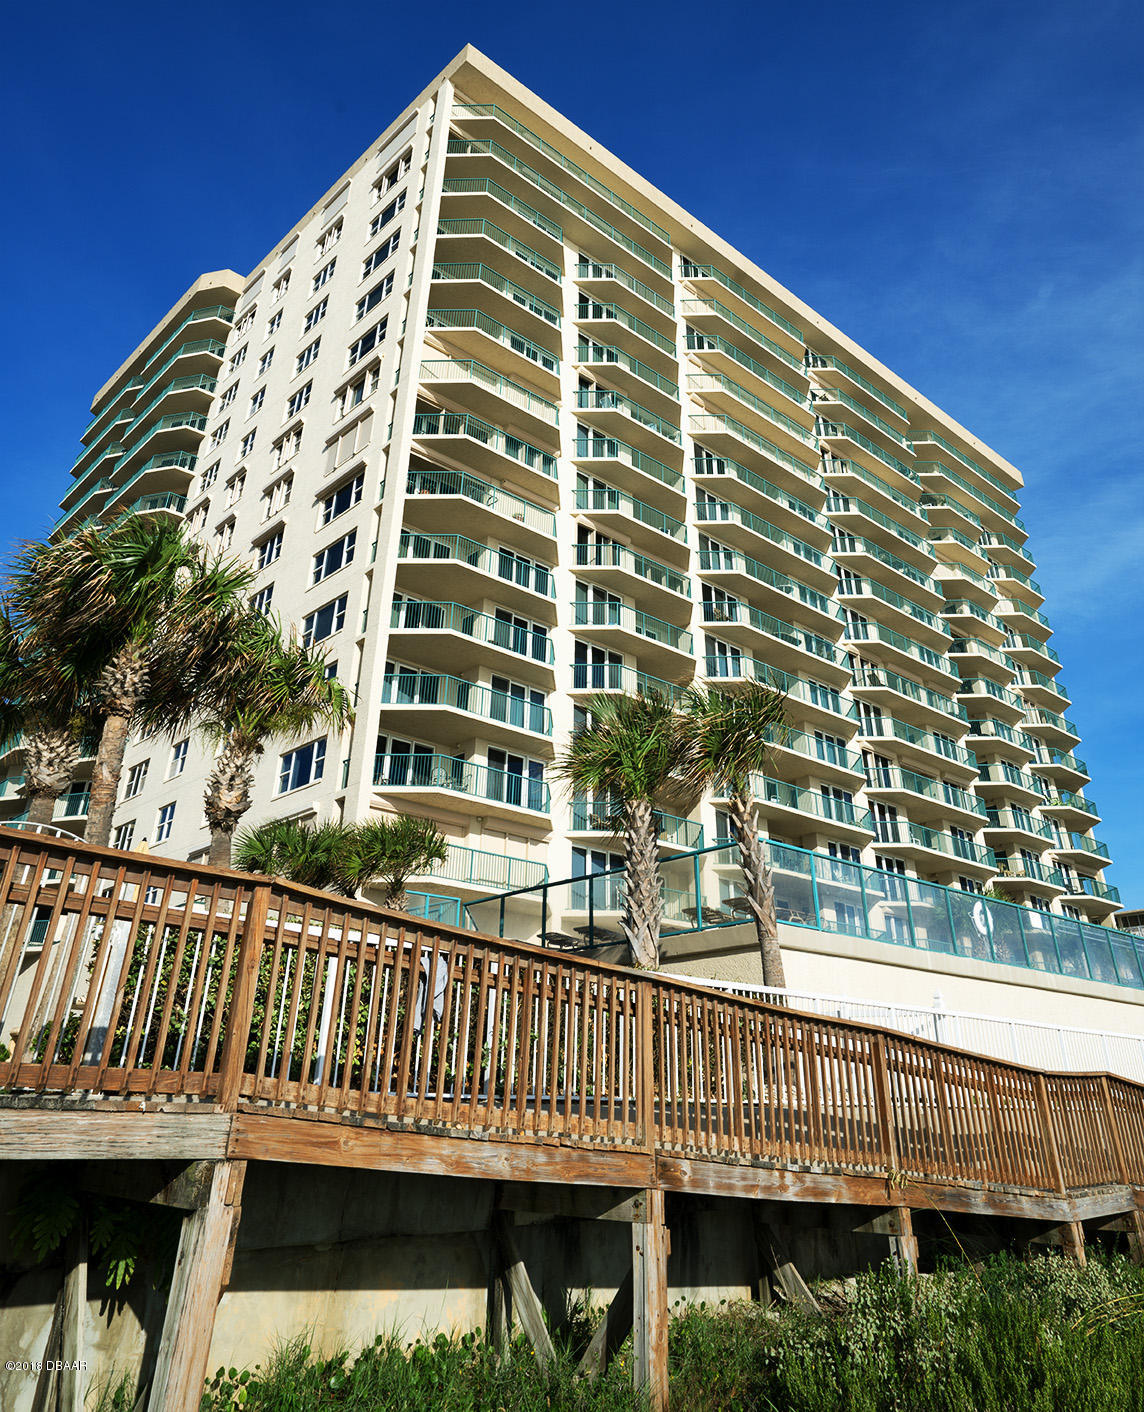 2055 S Atlantic Avenue, Daytona Beach Shores, Florida